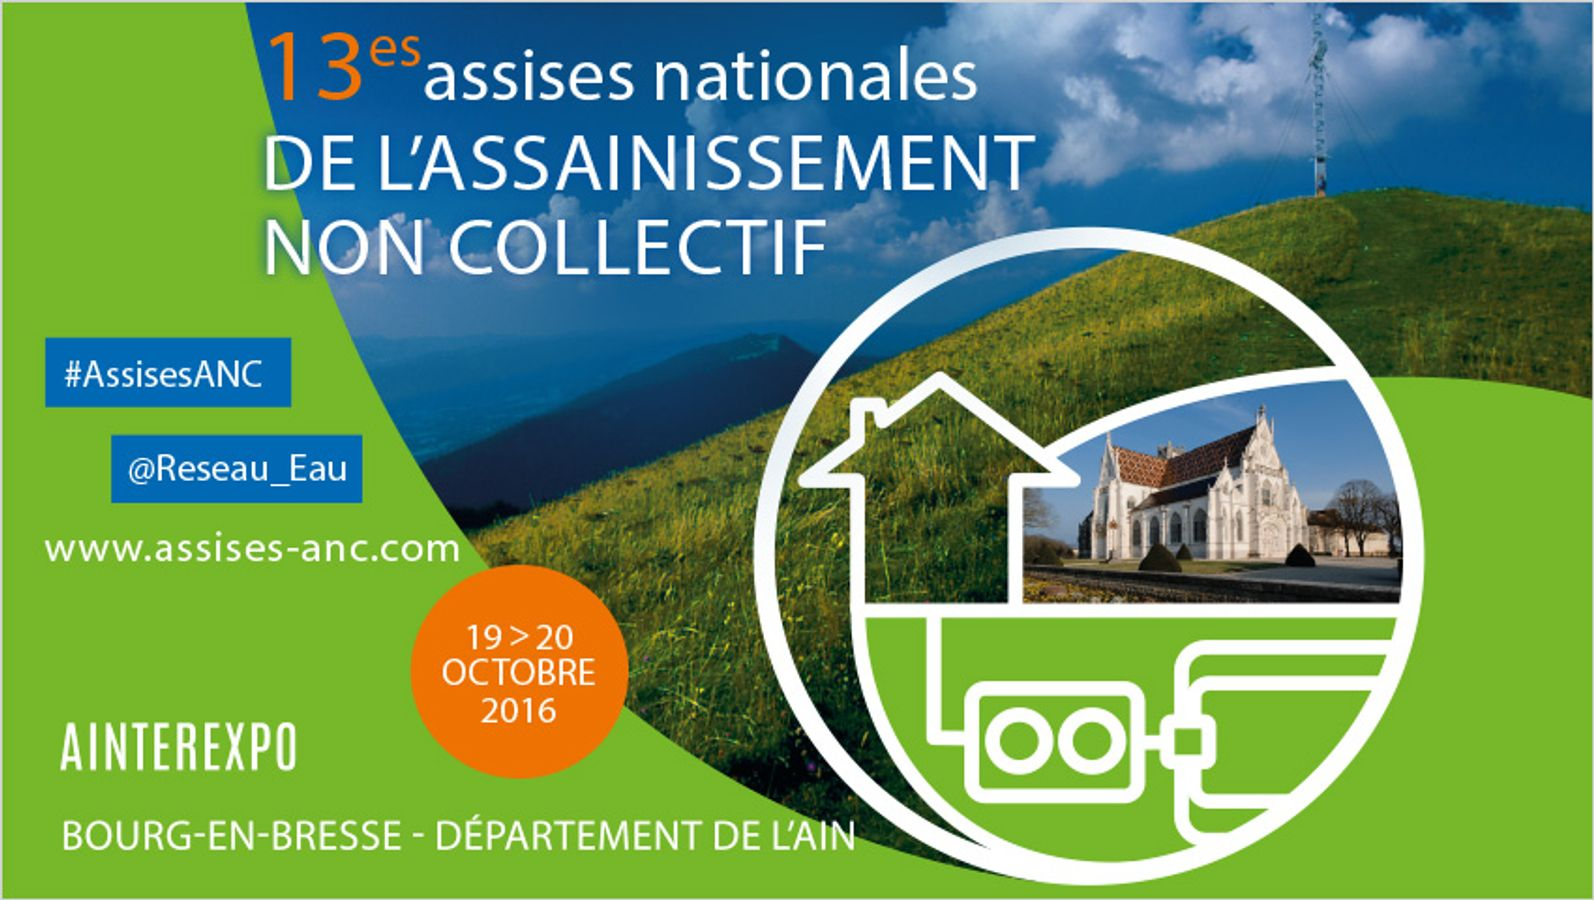 Assises ANC - Supports disponibles - Jour 2